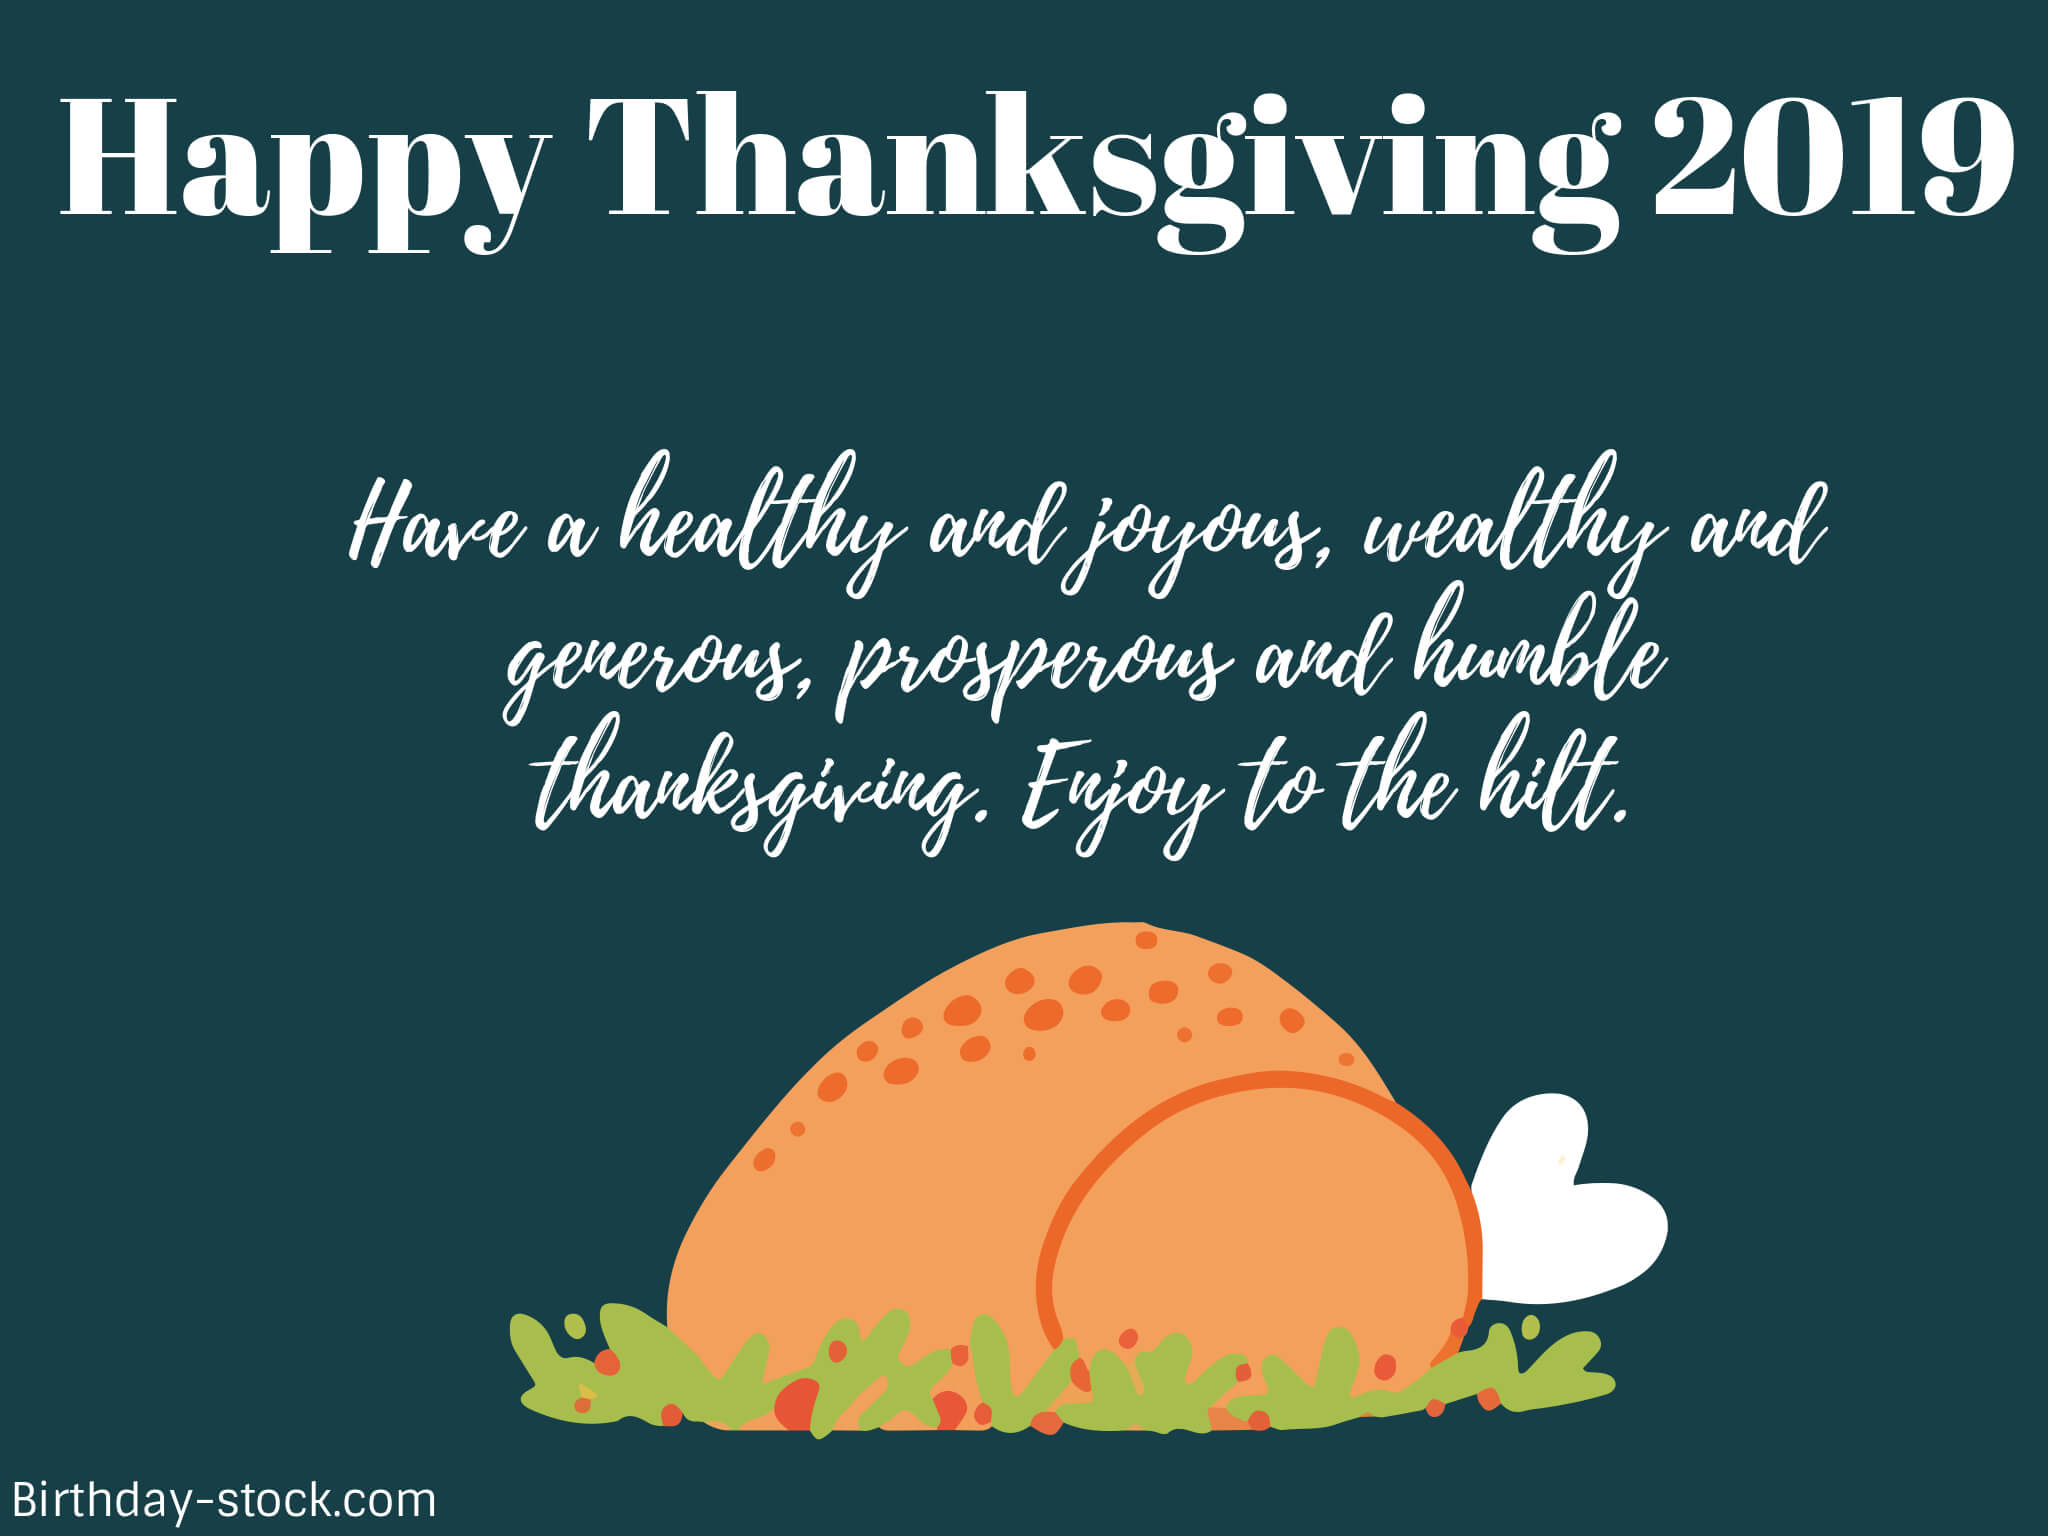 Happy Thanksgiving Day Greetings 2019